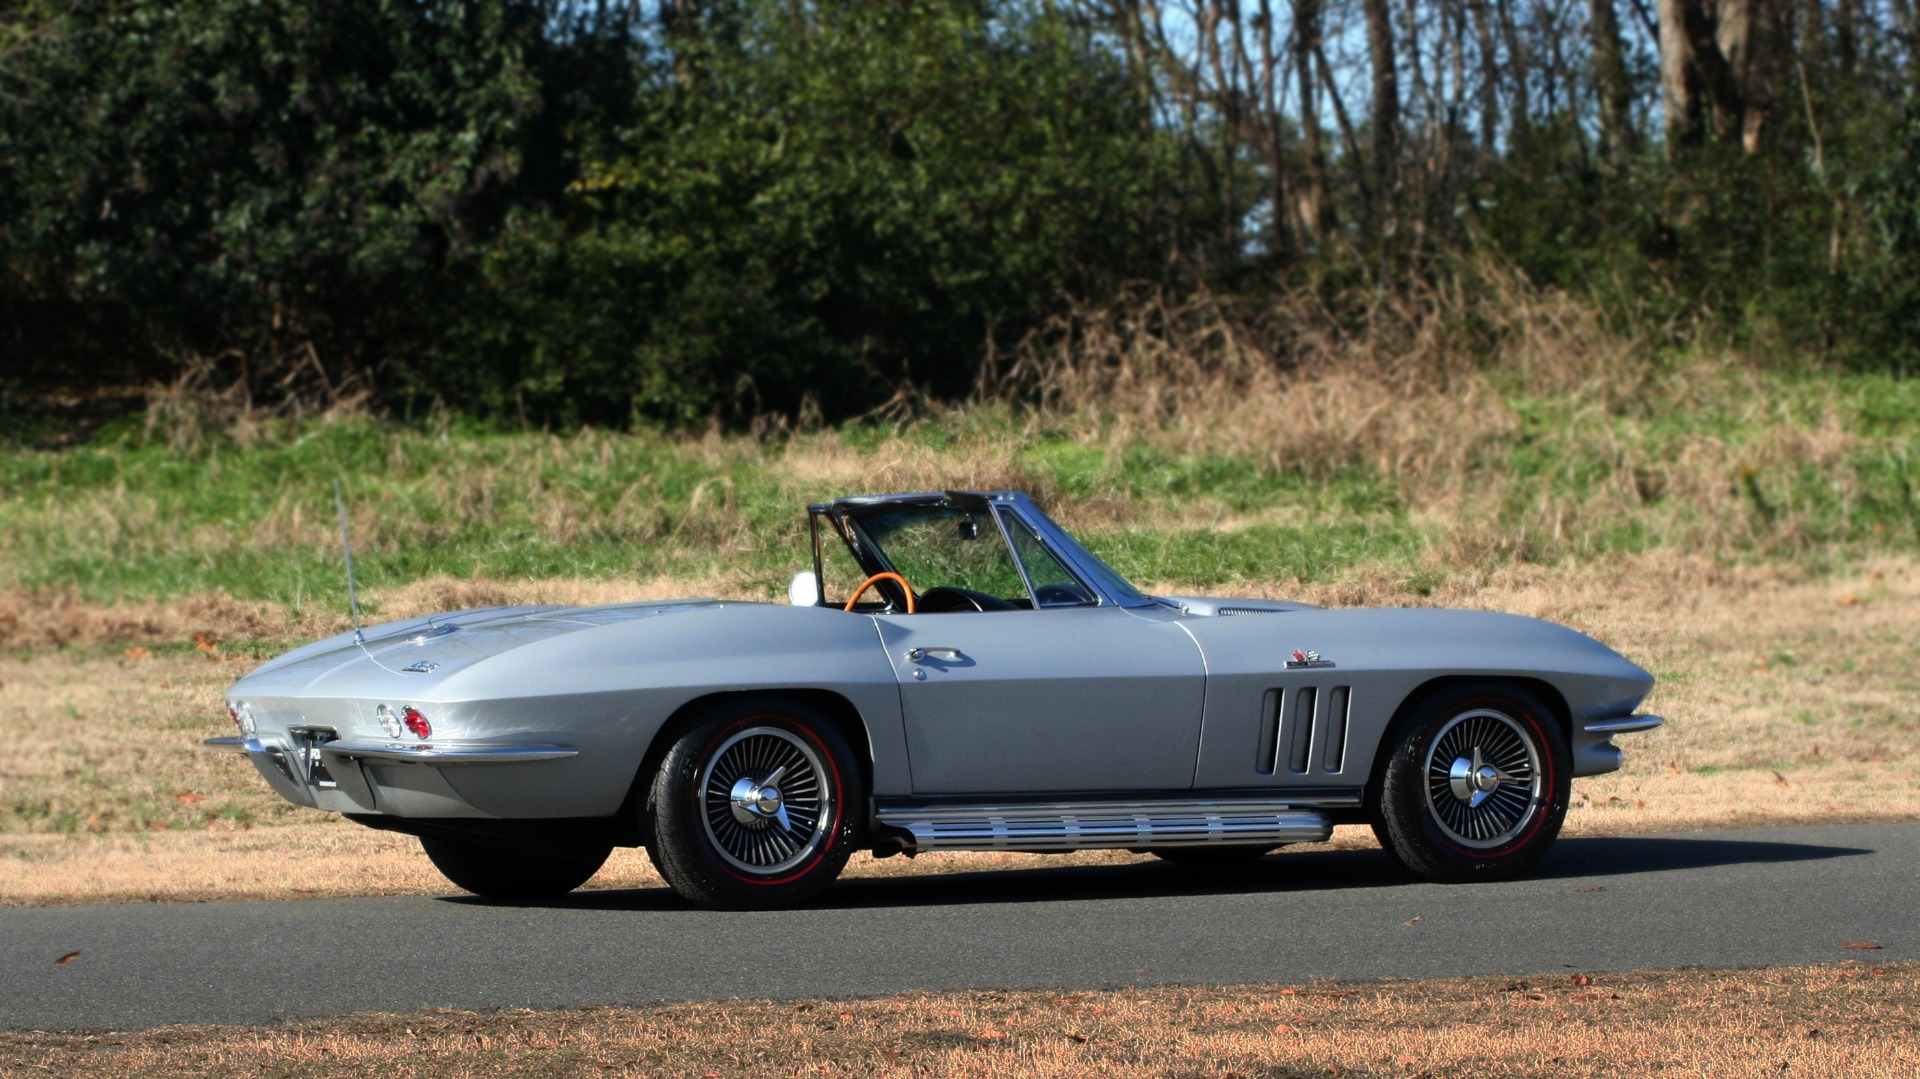 Used 1966 Chevrolet CORVETTE STINGRAY CONVERTIBLE 427 / 4-SPD / NUMBER MATCHING for sale Sold at Formula Imports in Charlotte NC 28227 8